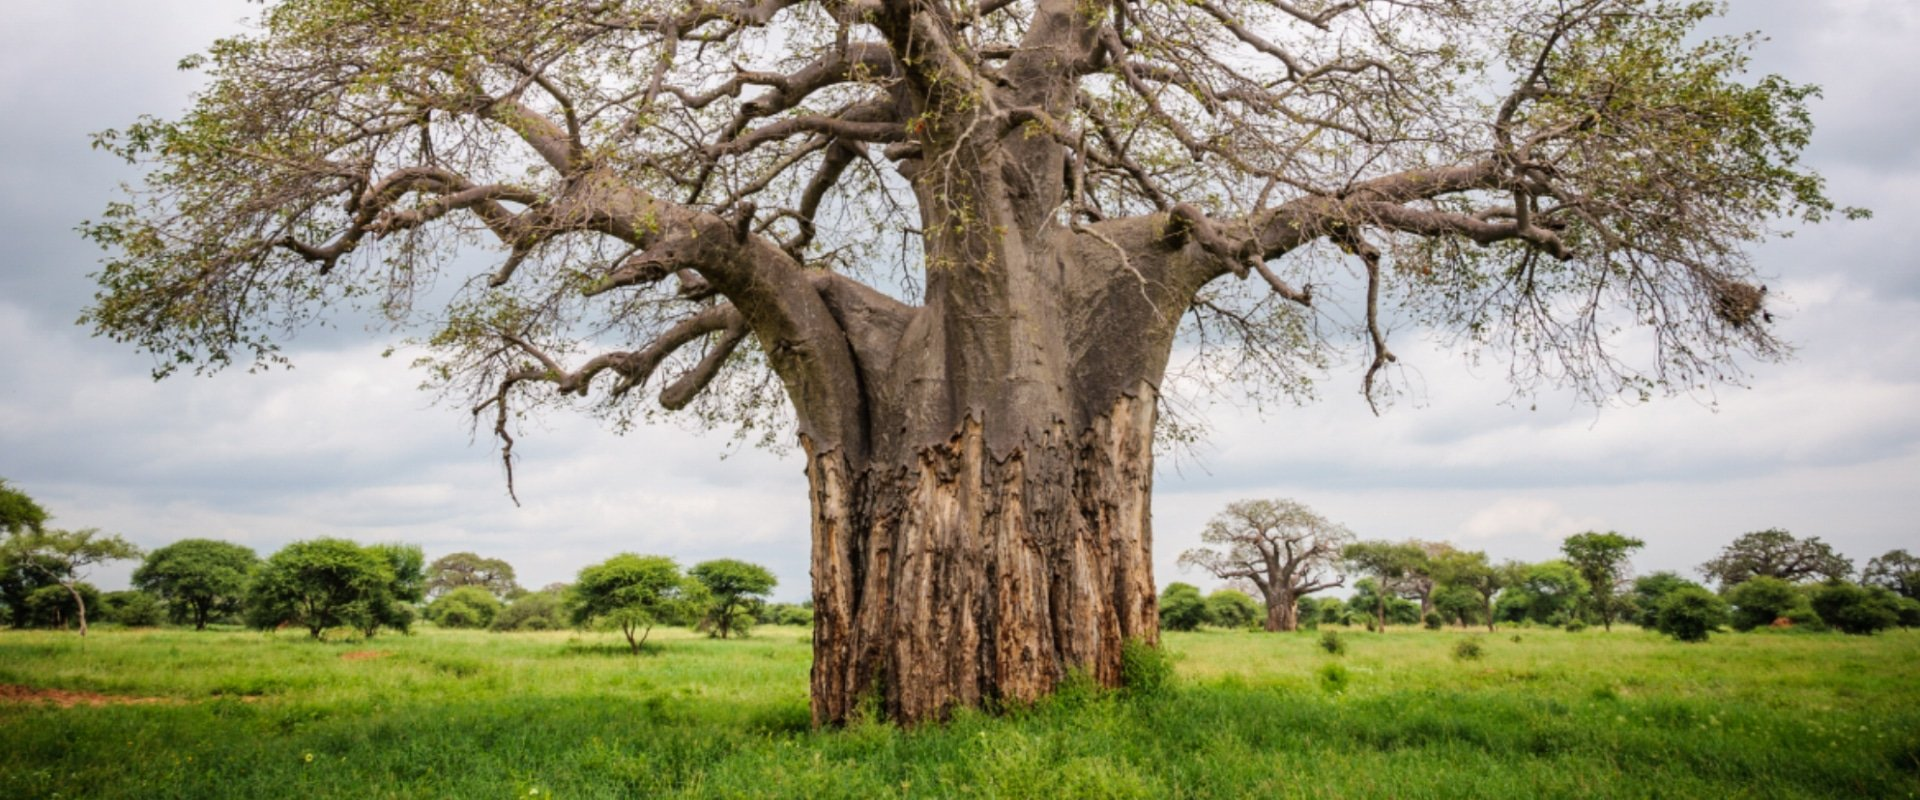 Photograph scenic landscapes with magnificent Baobab trees